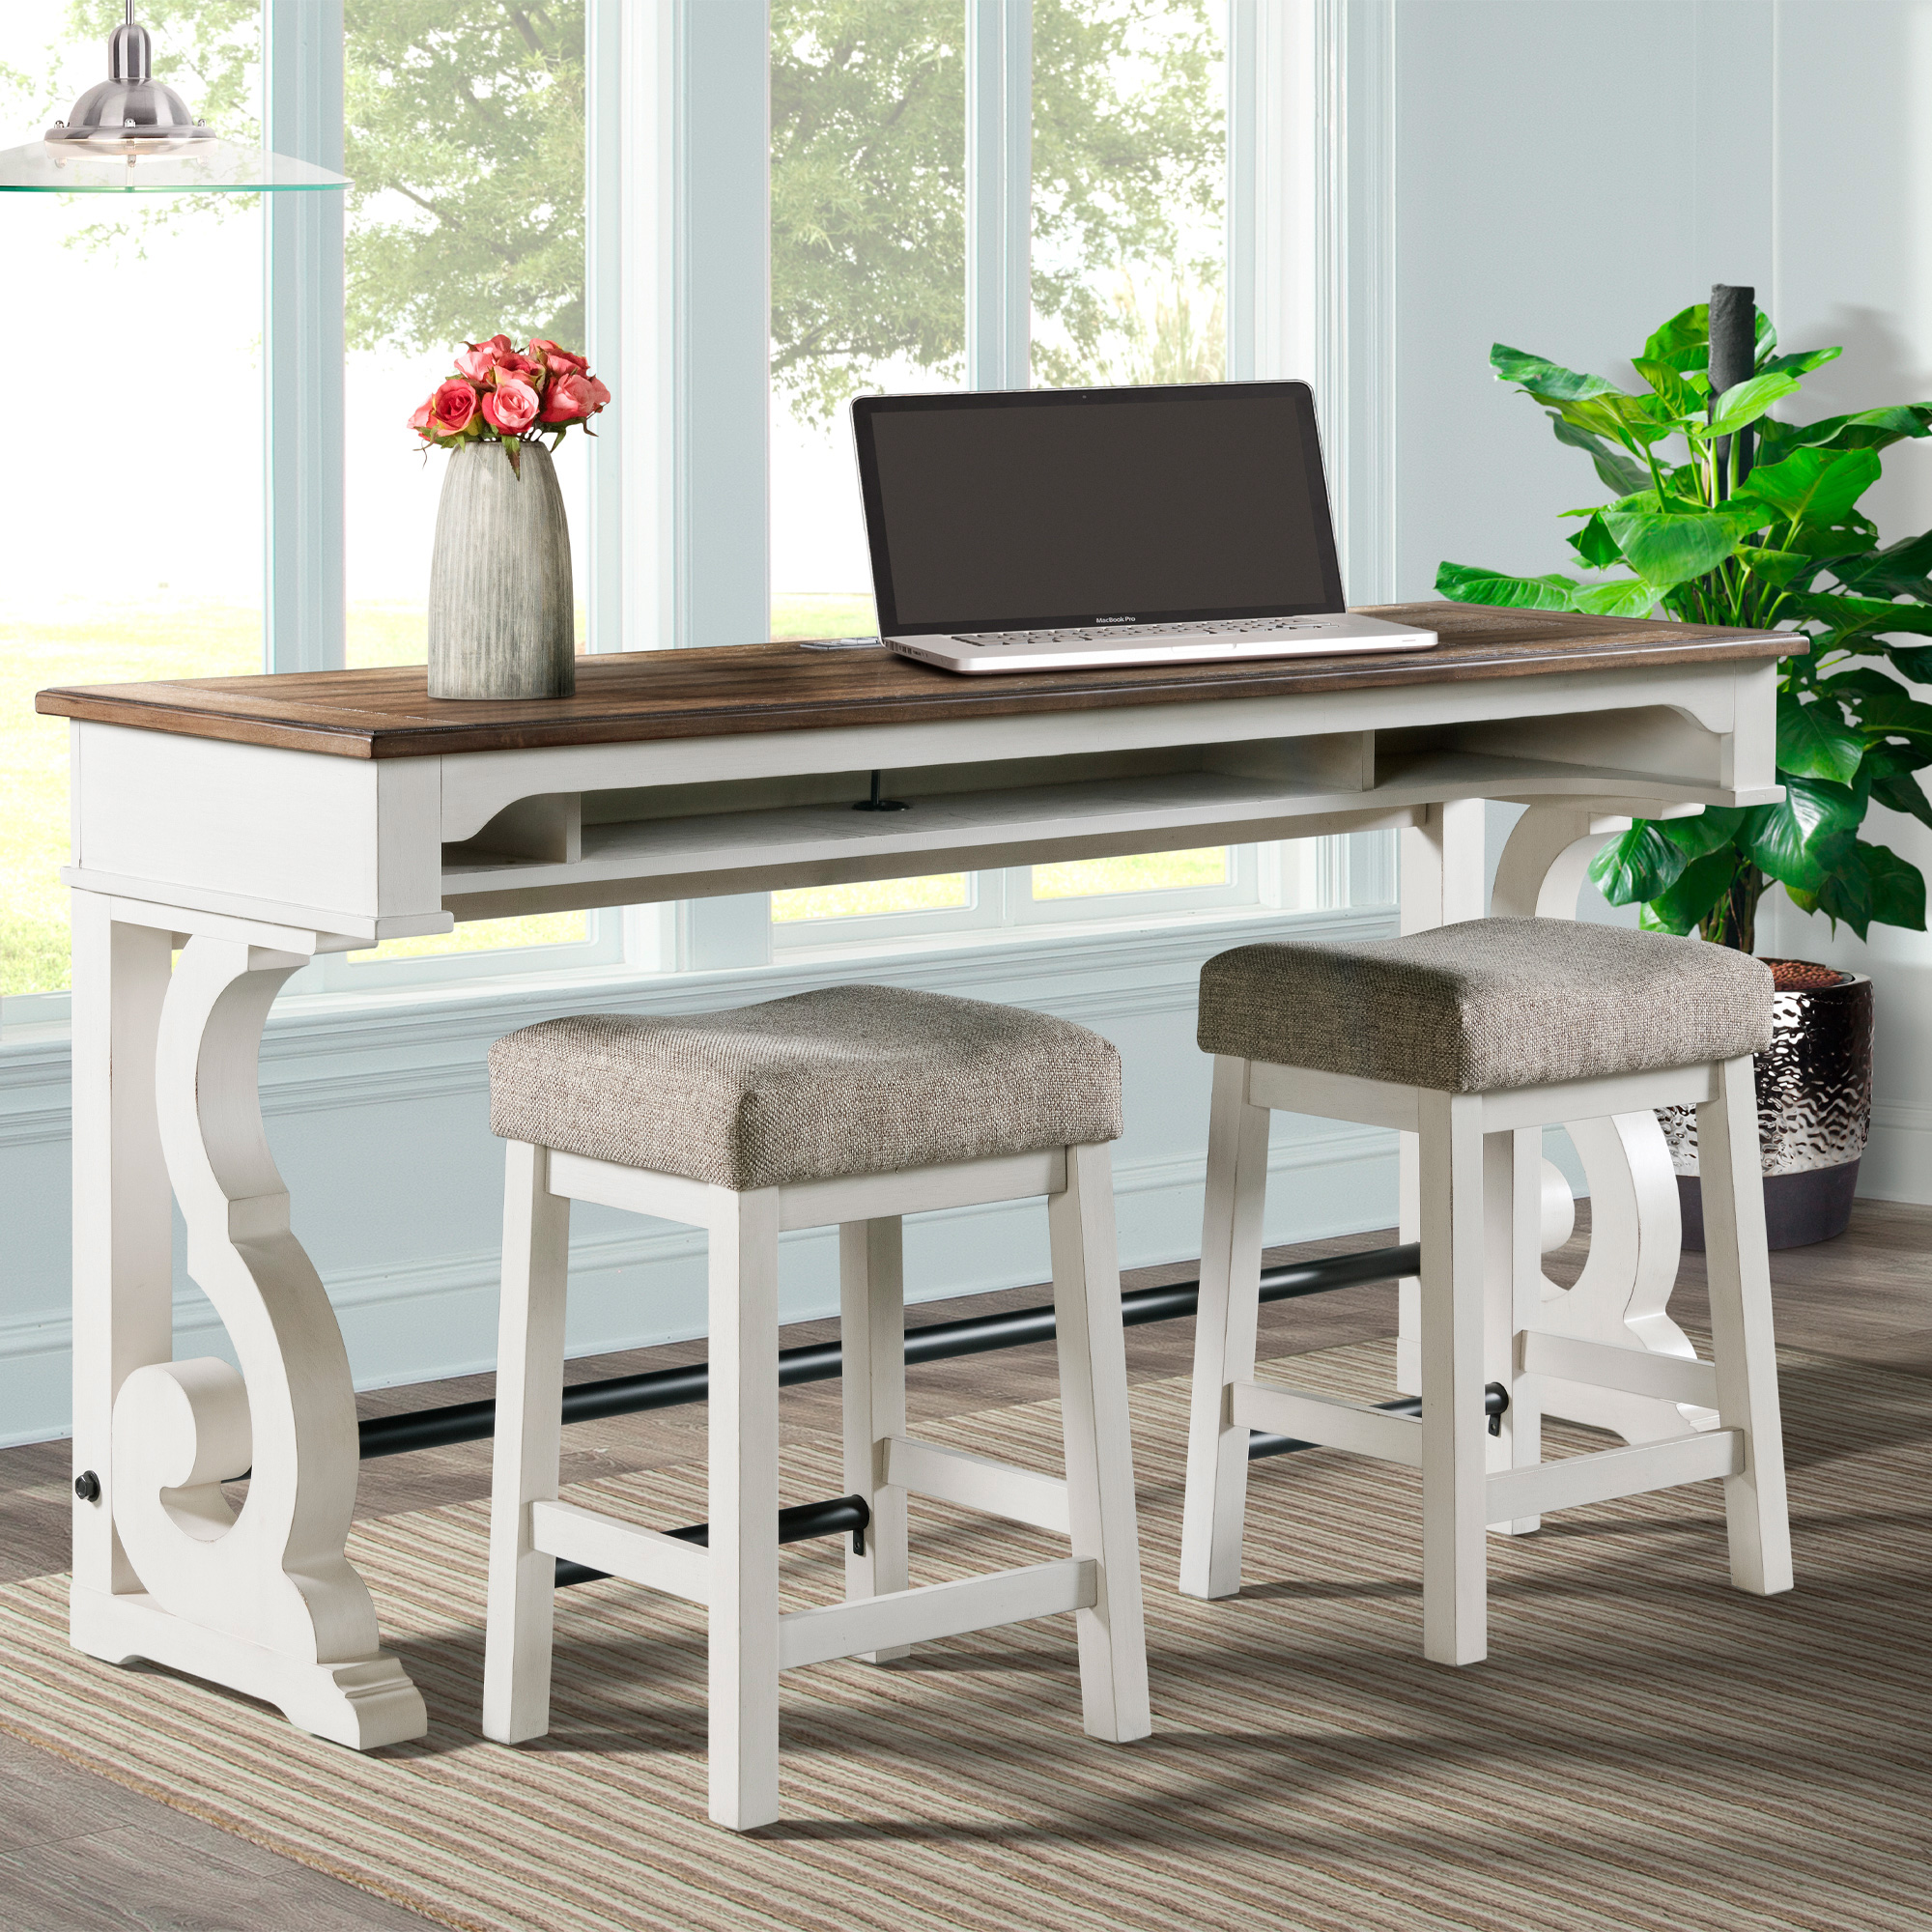 Intercon | Drake Rustic White Bar Table with 3 Stools